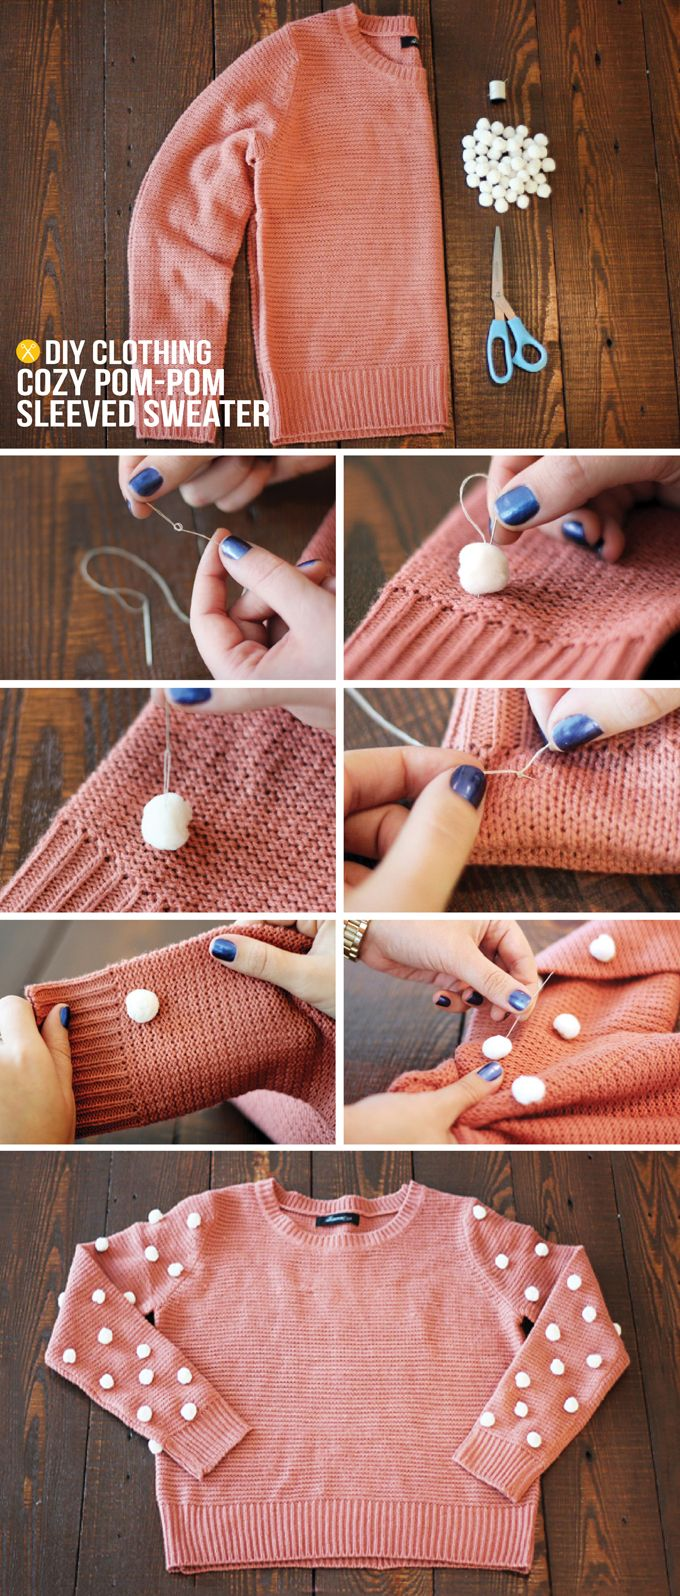 DIY pom-pom sweater...can also do with buttons or sequins